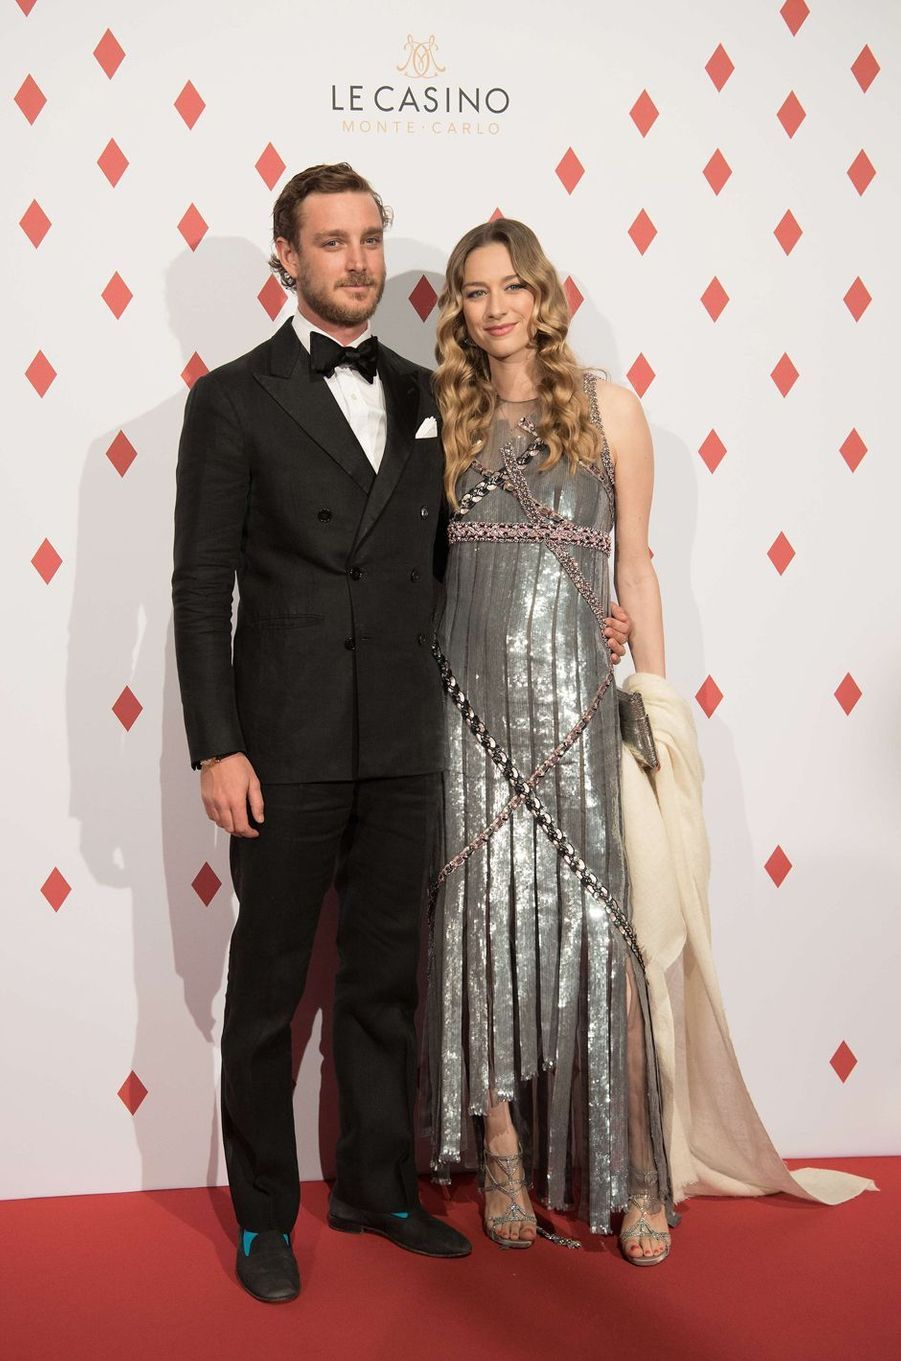 Beatrice Borromeo et Pierre Casiraghi à Monaco, le 28 avril 2017